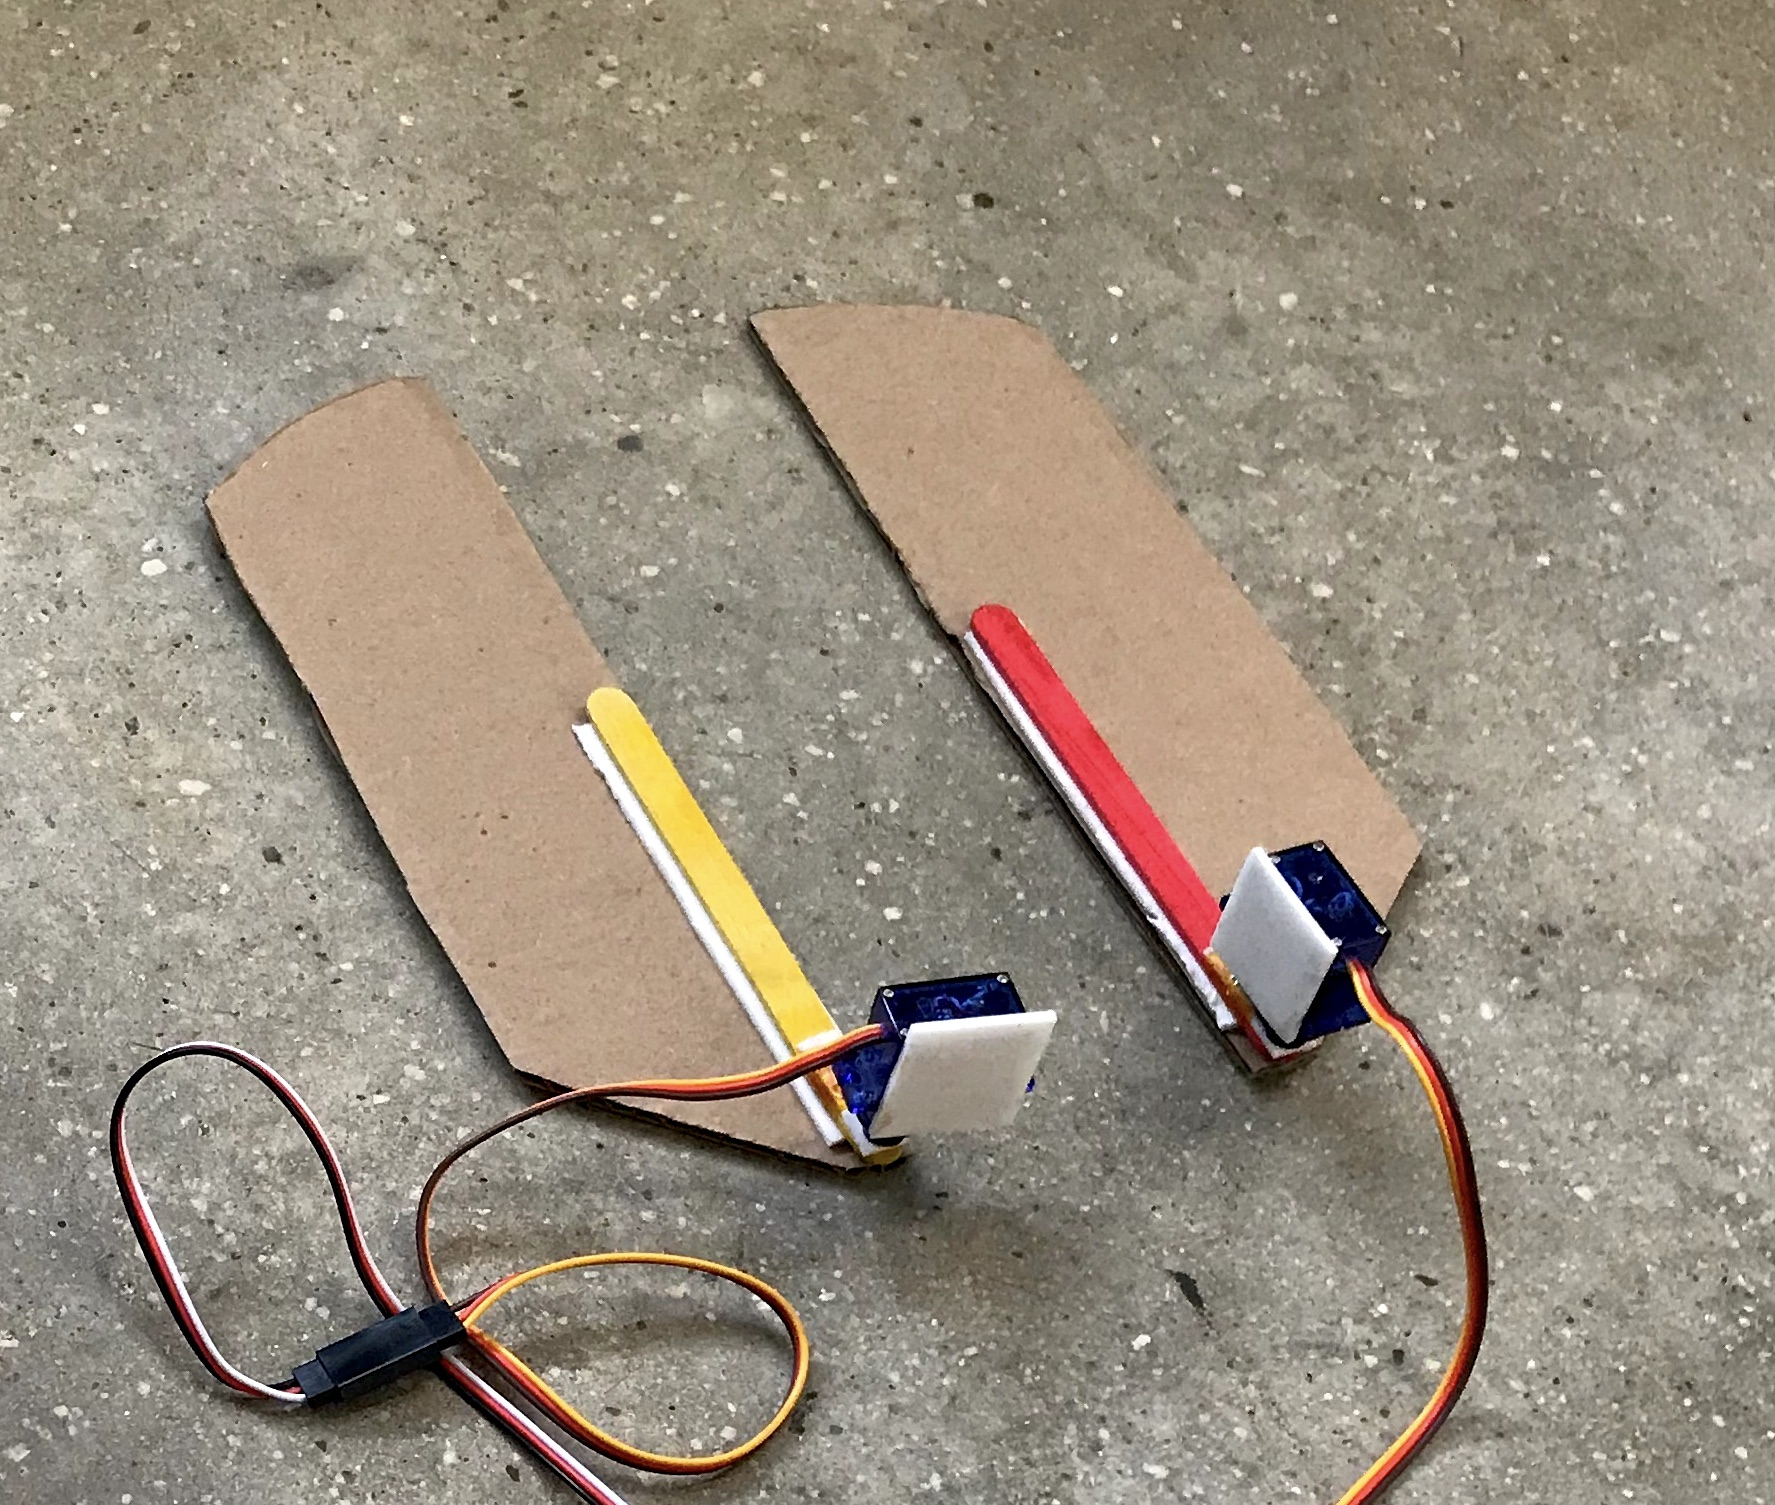 circuit_playground_projects_IMG_4367_copy.jpg